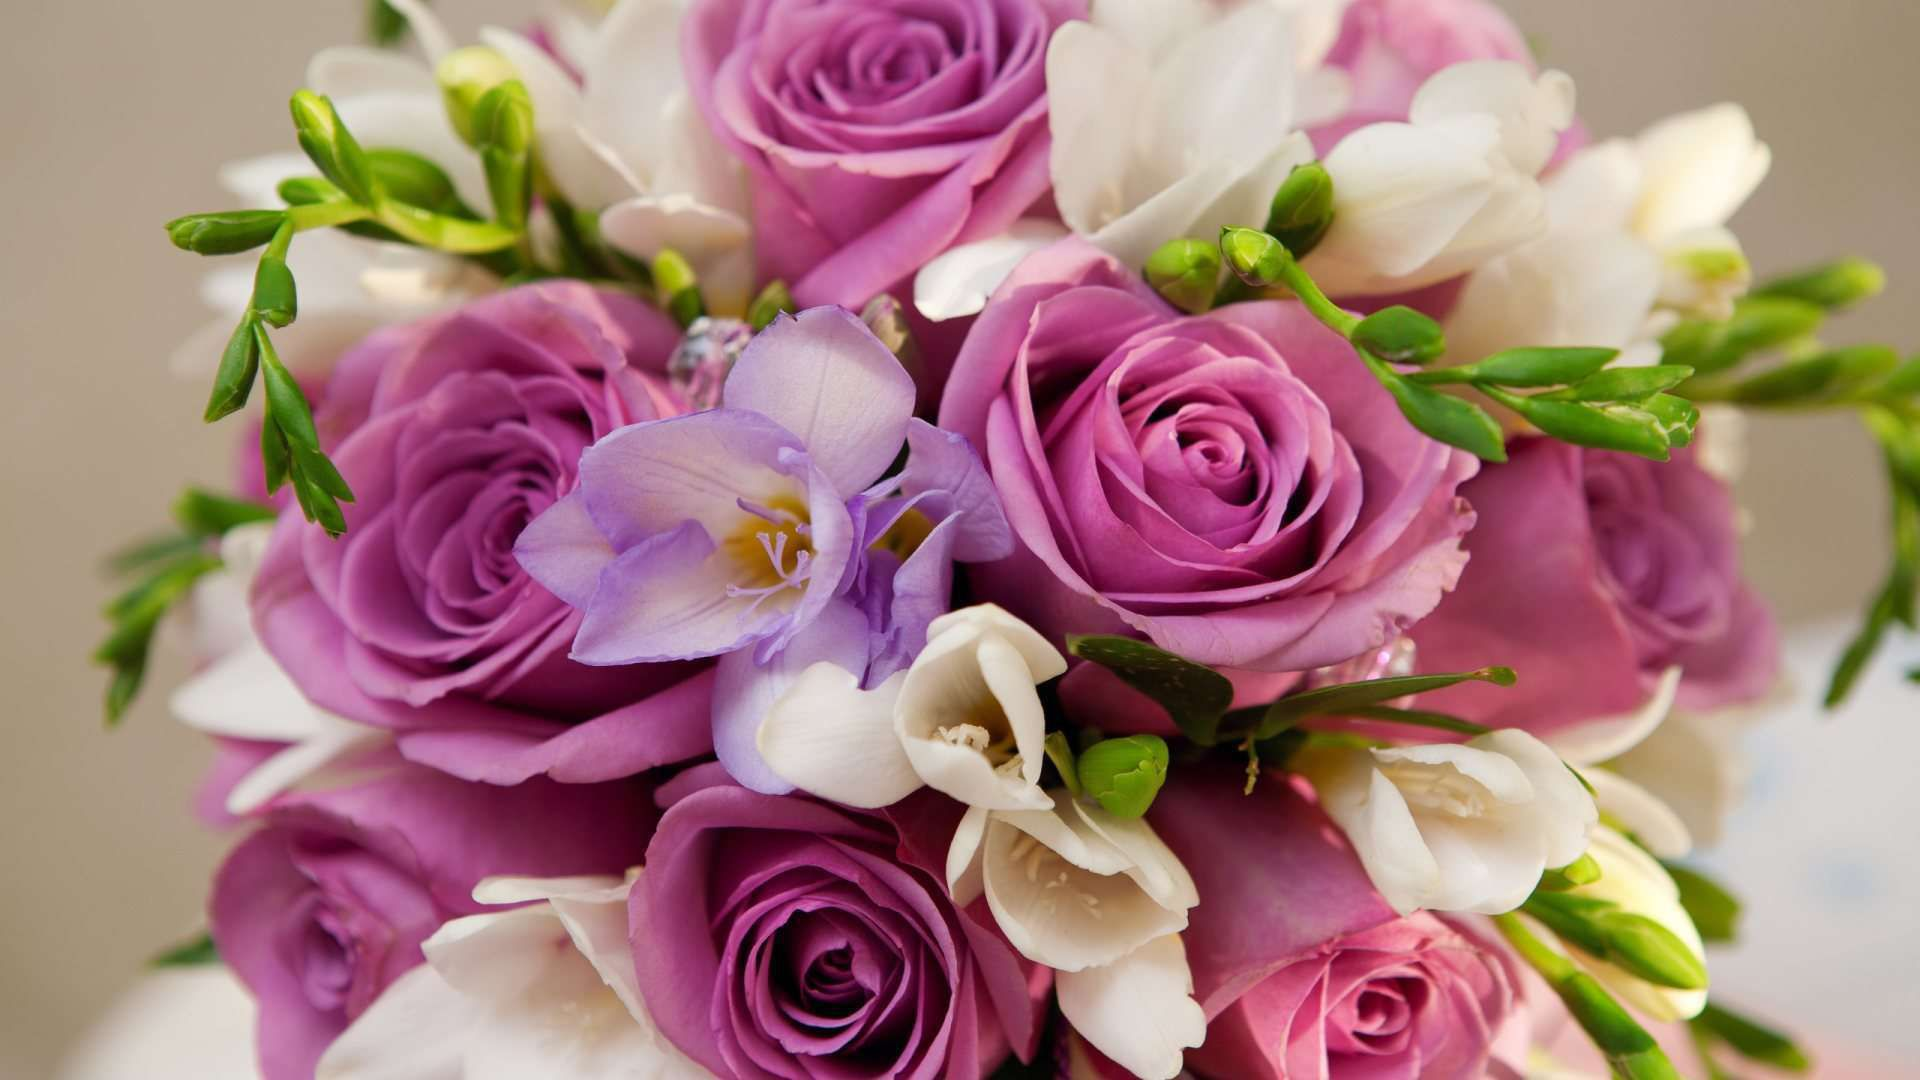 Bouquet Of Flowers Wallpapers